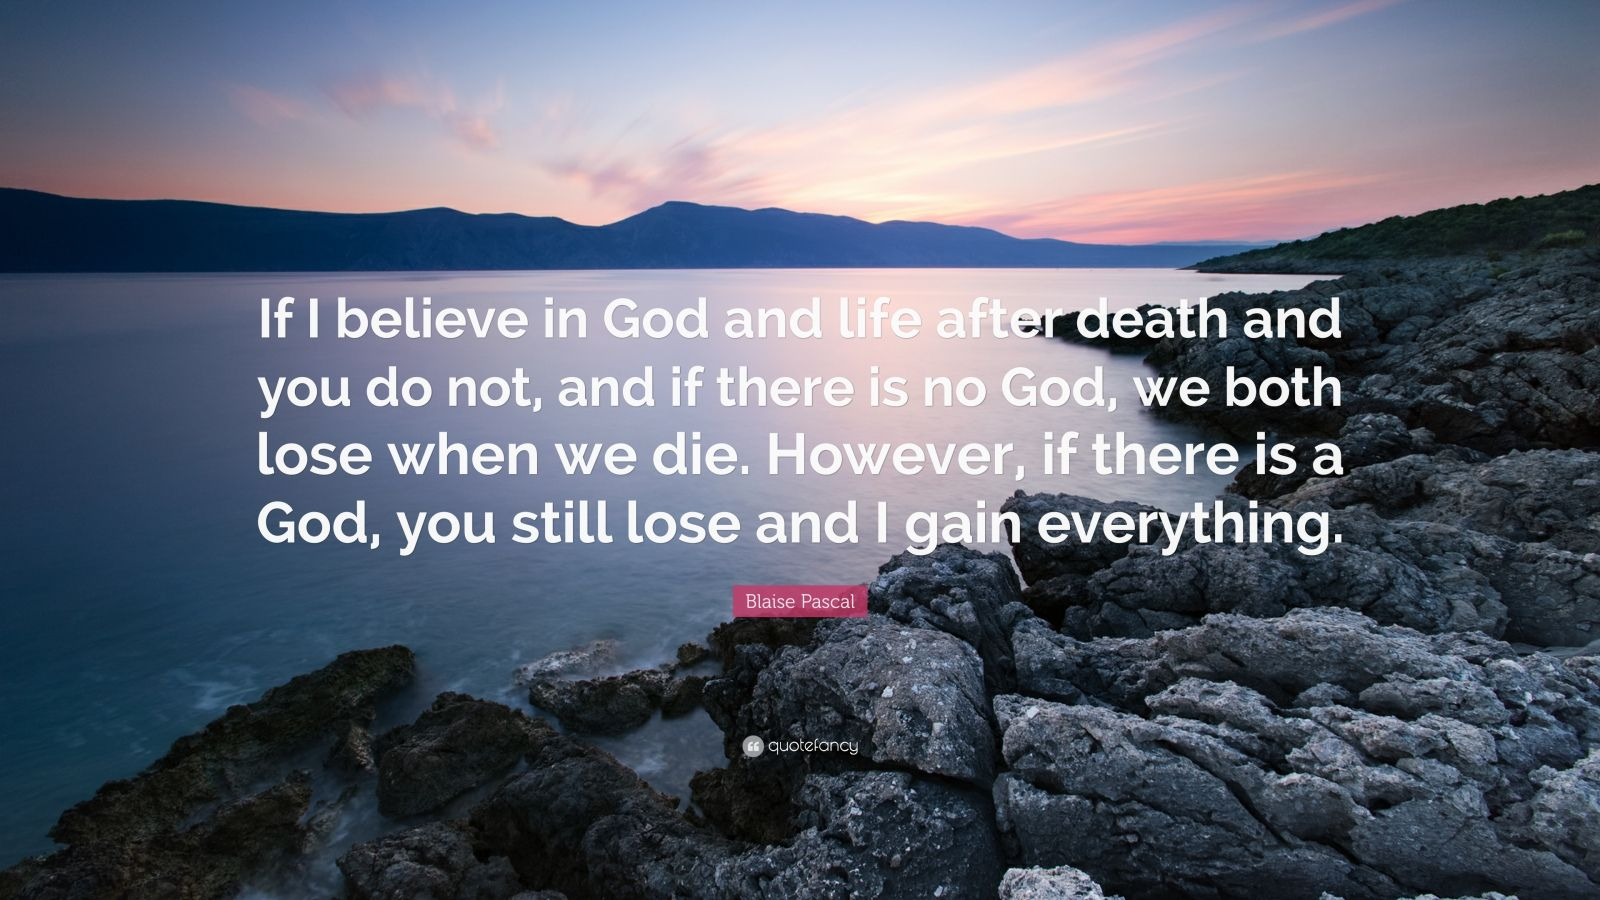 "Blaise Pascal Quote: ""If I believe in God and life after death and you do not, and if there is no God, we both lose when we die. However, if there is a God, you still lose and I gain everything."""